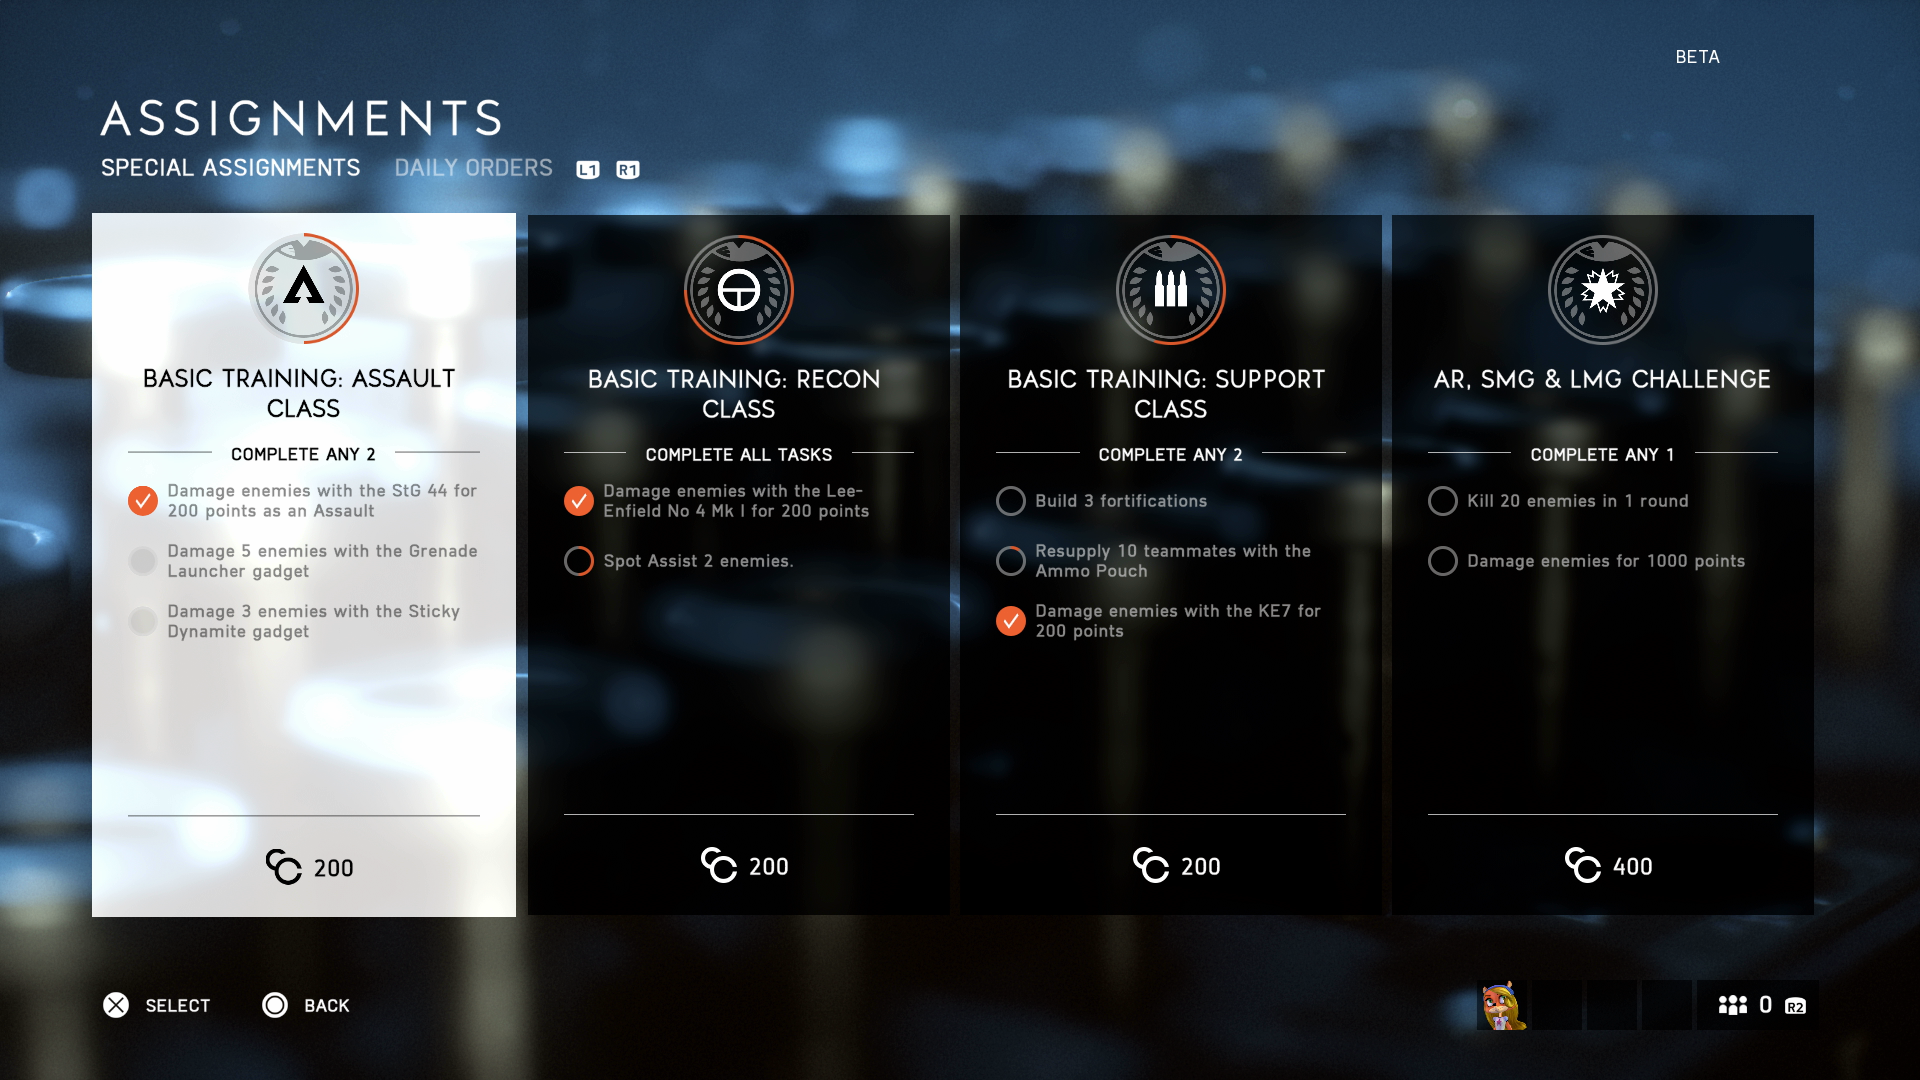 Battlefield 5 Guide – Tips, Assignments, and Upgrades